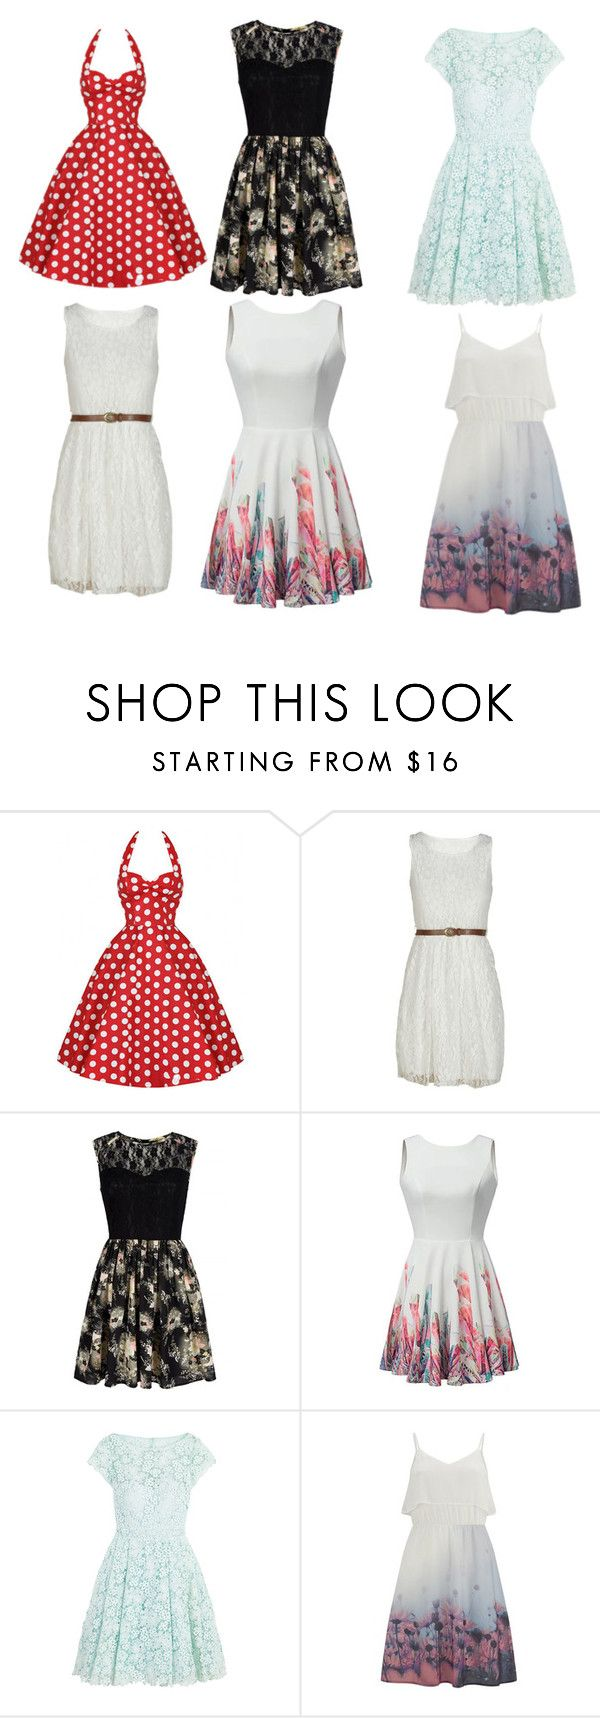 """dresses galore"" by aryannah333 ❤ liked on Polyvore featuring Mela Loves London, ML Monique Lhuillier and Vero Moda"